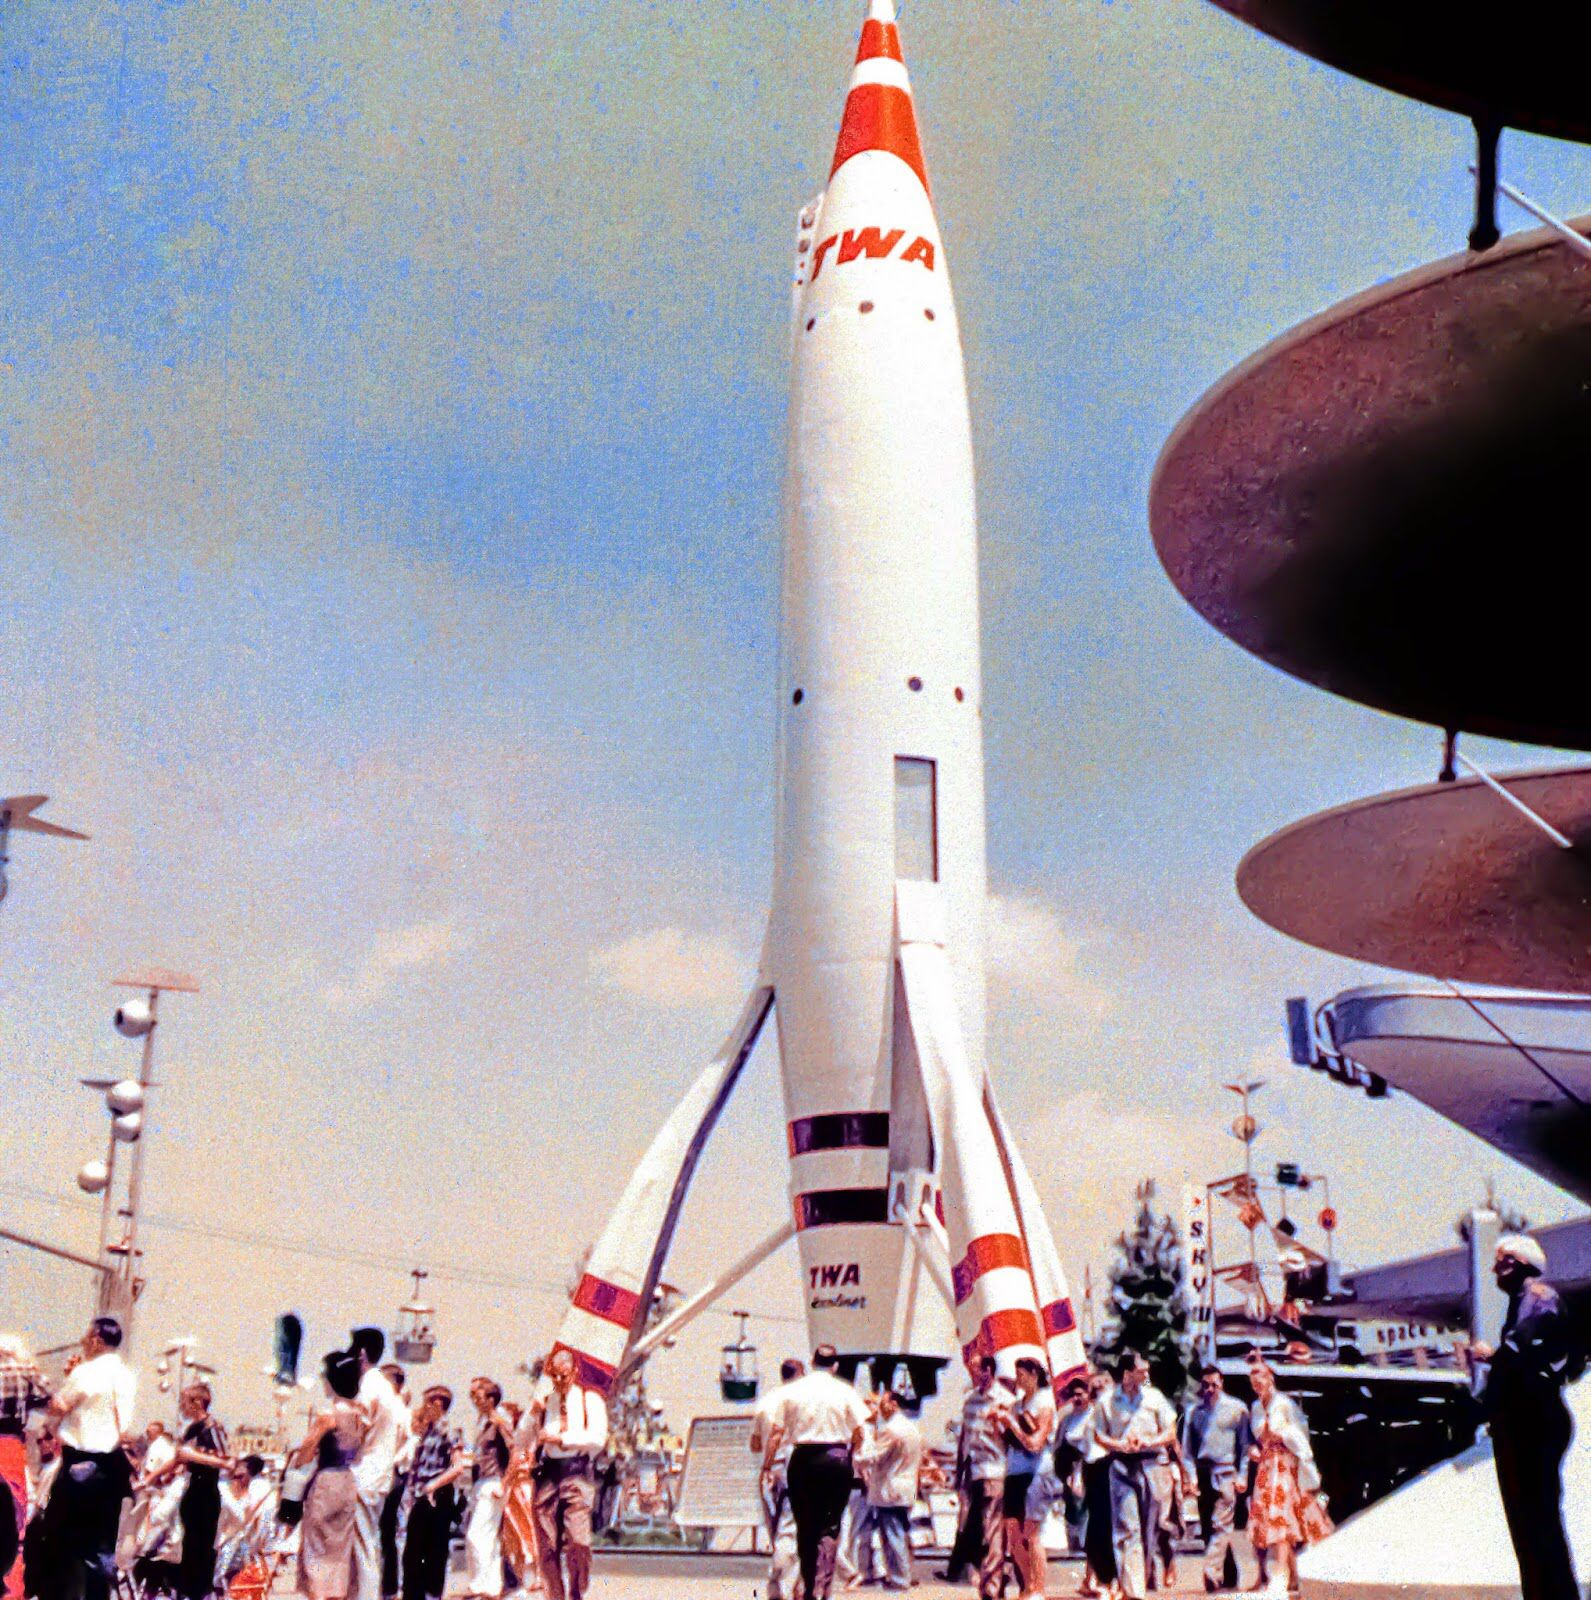 Rockets To The Moon: Daily Vintage Disneyland: The TWA Rocket To The Moon In